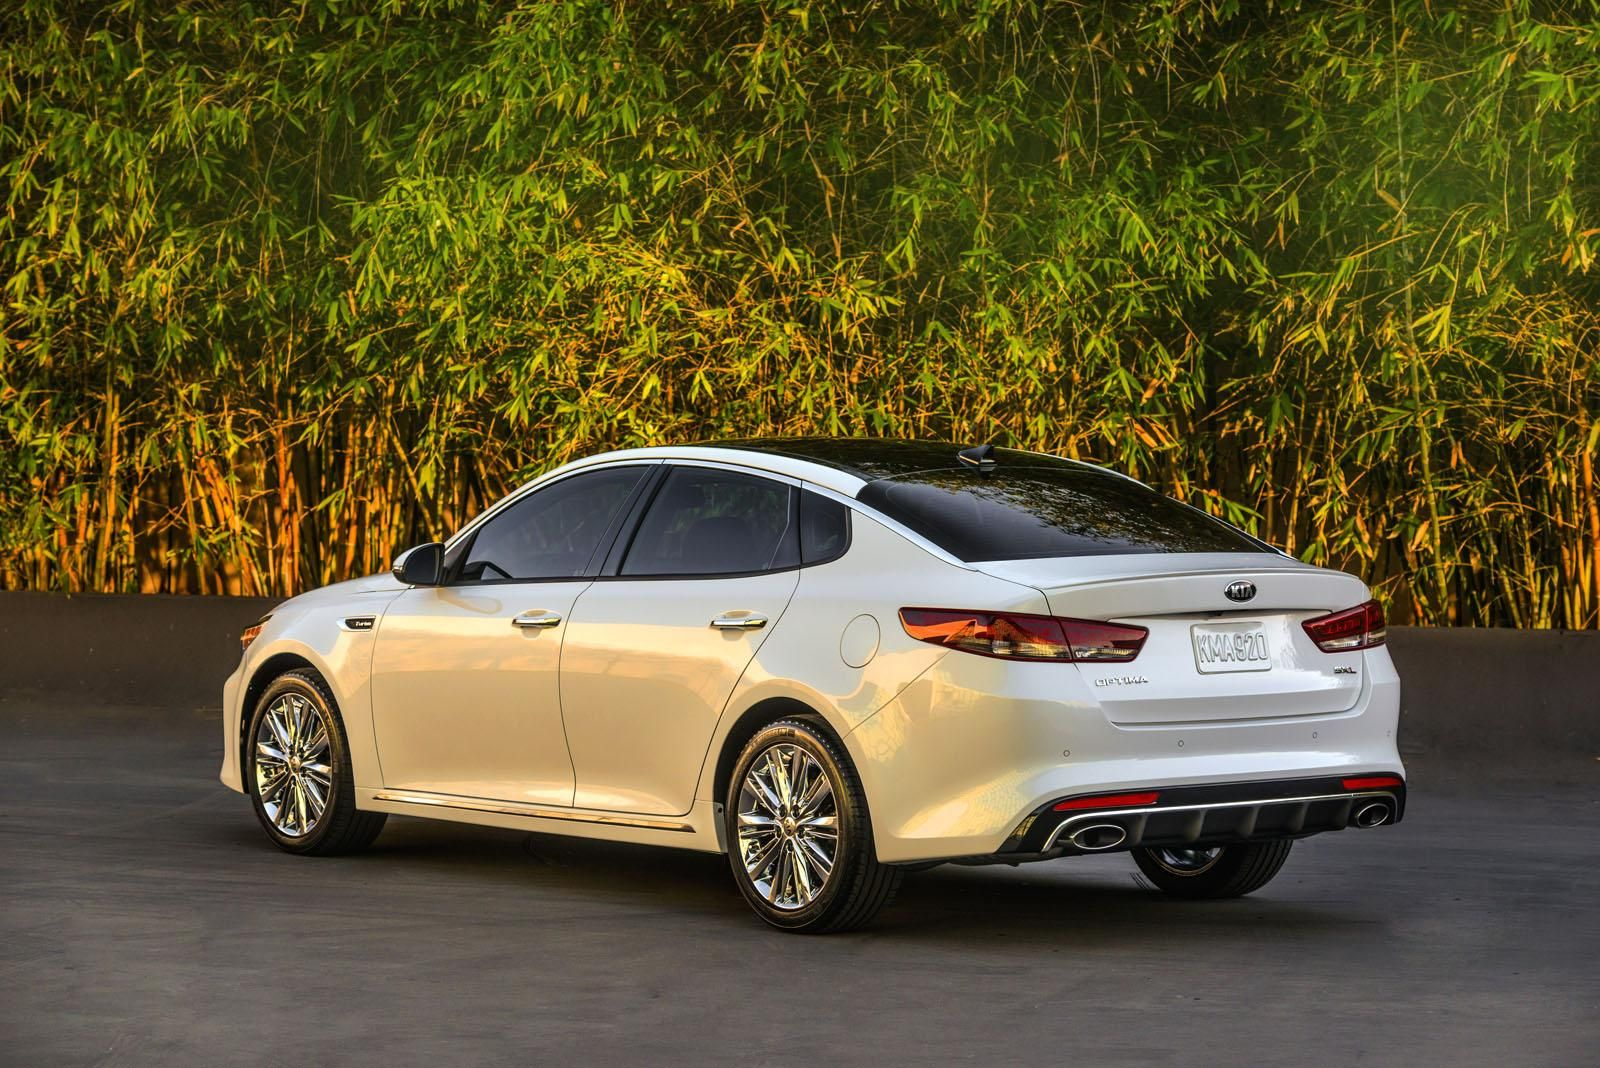 2016 Kia Optima 8 Images 2015 New York Auto Show 2016 Kia Optima Kia Optima Kia Sedan